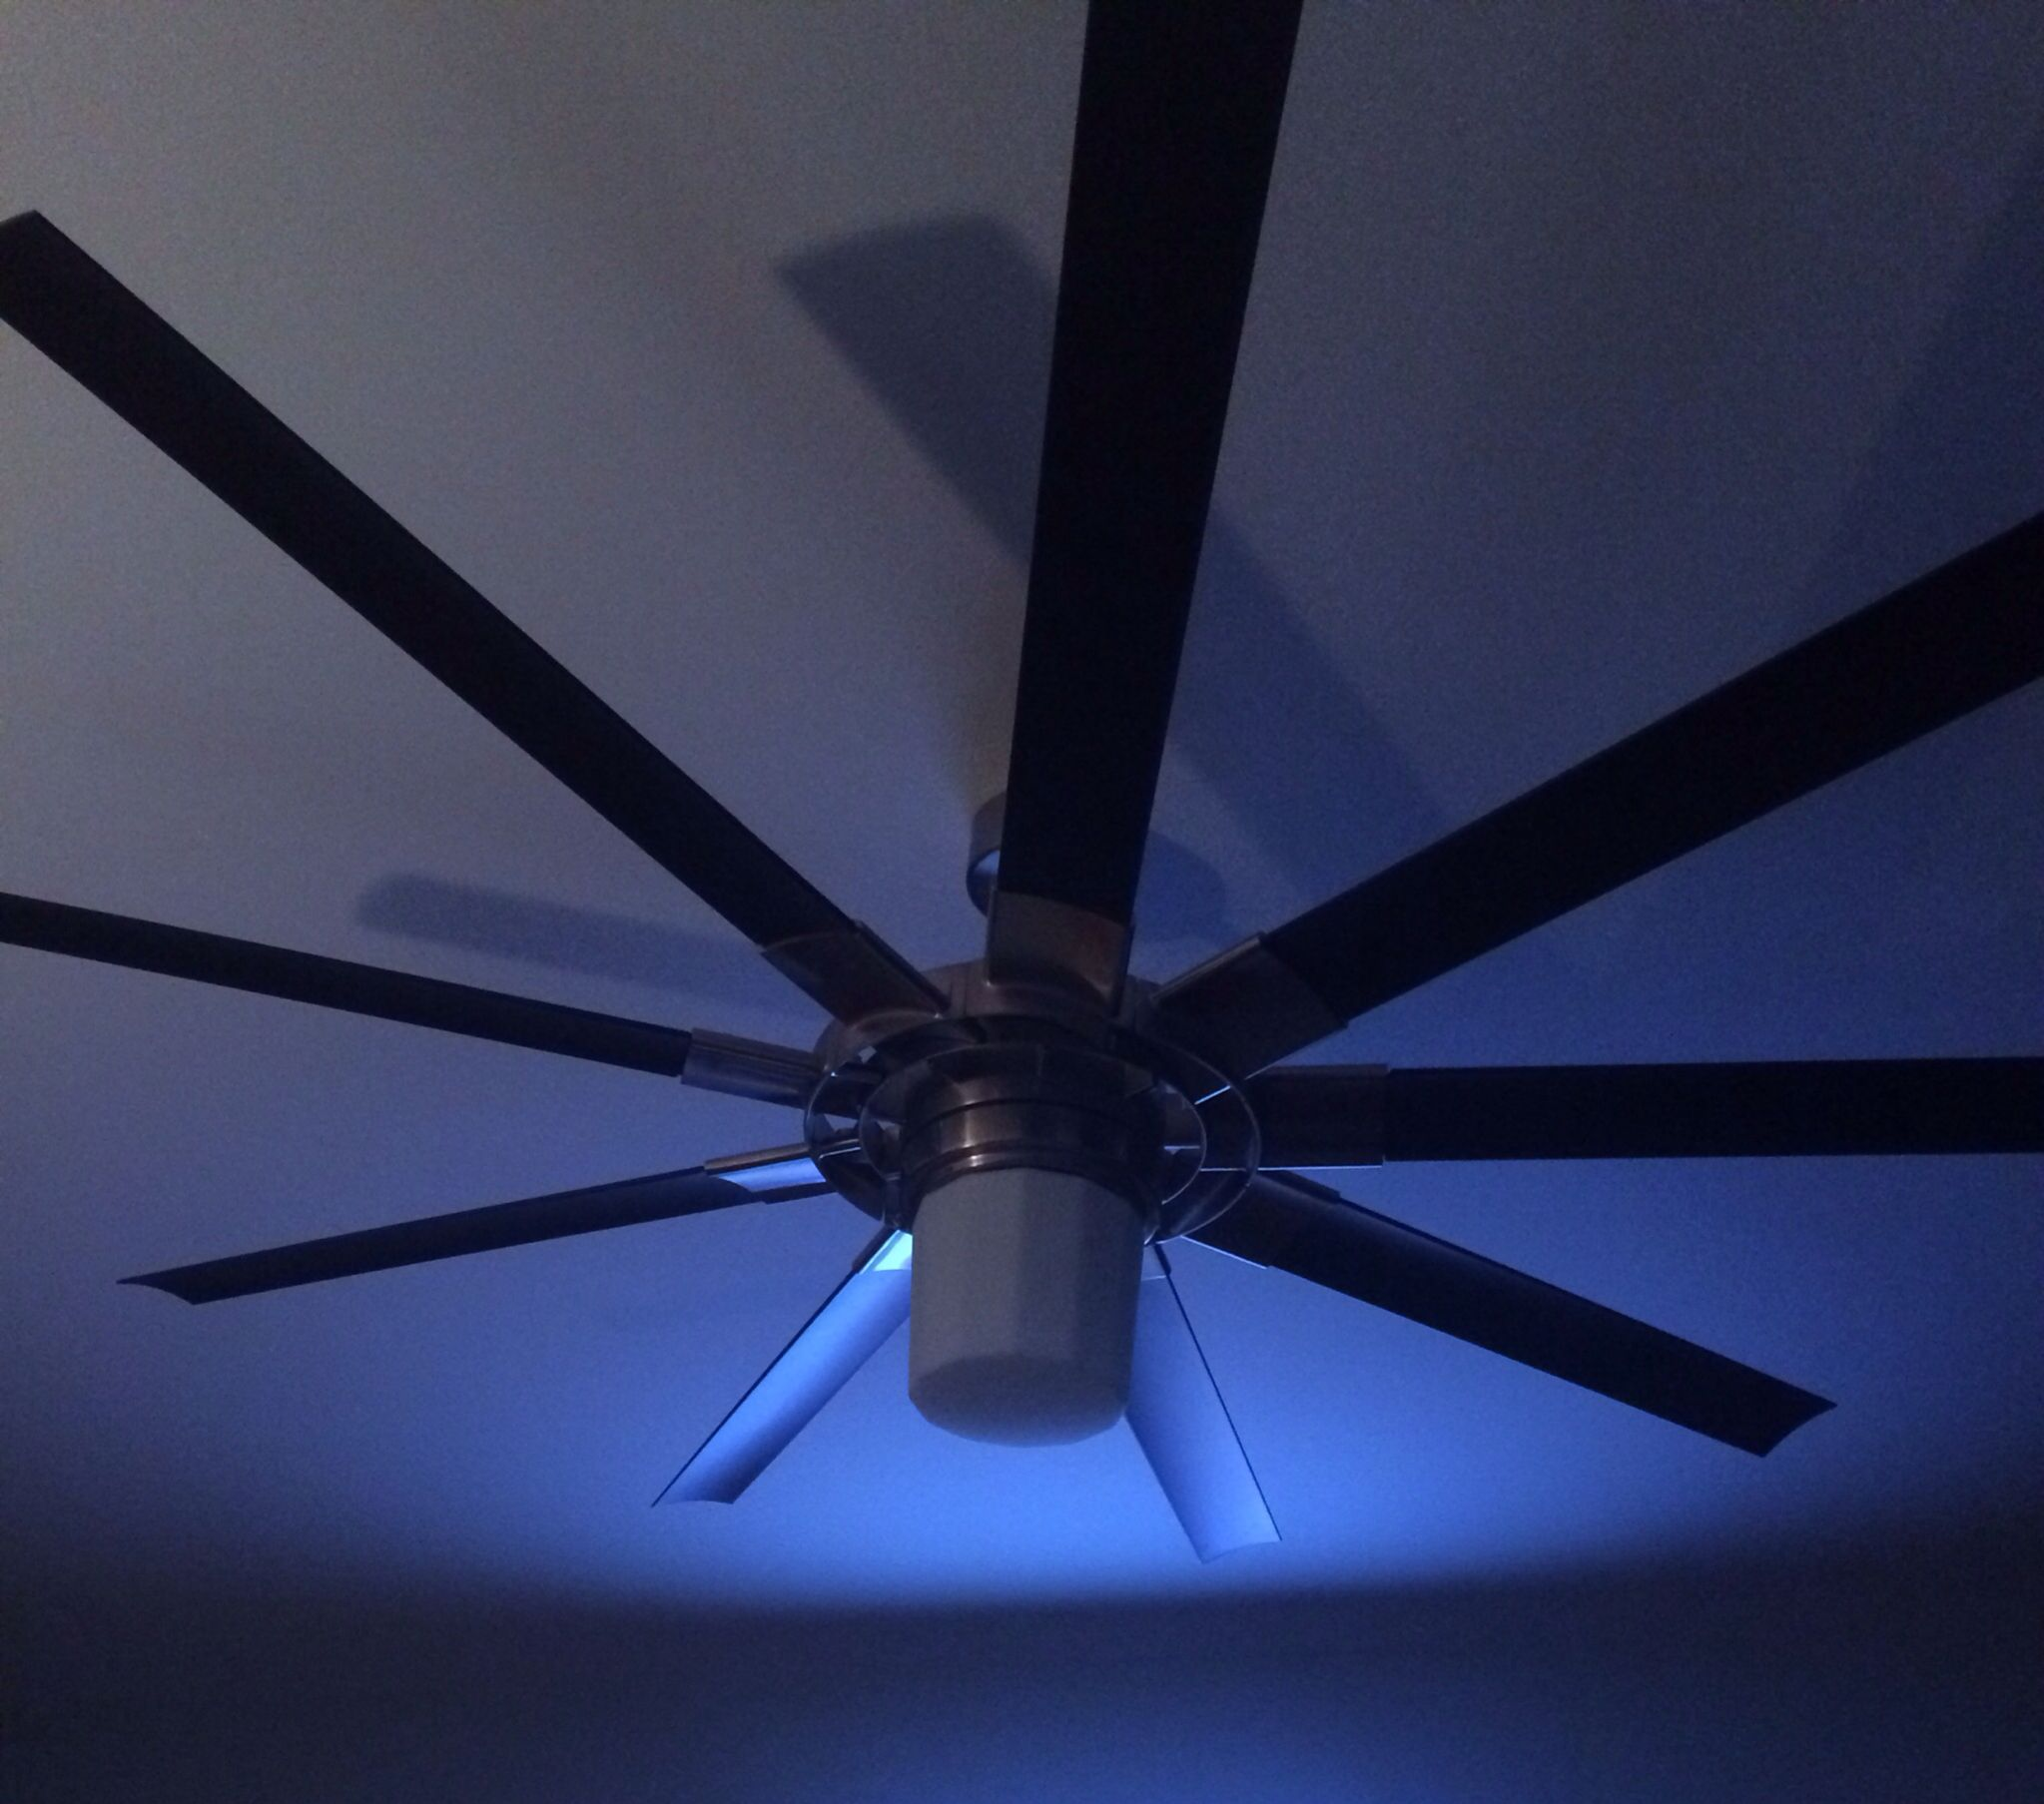 Helicopter ceiling fan --lowe's | For the Home | Pinterest